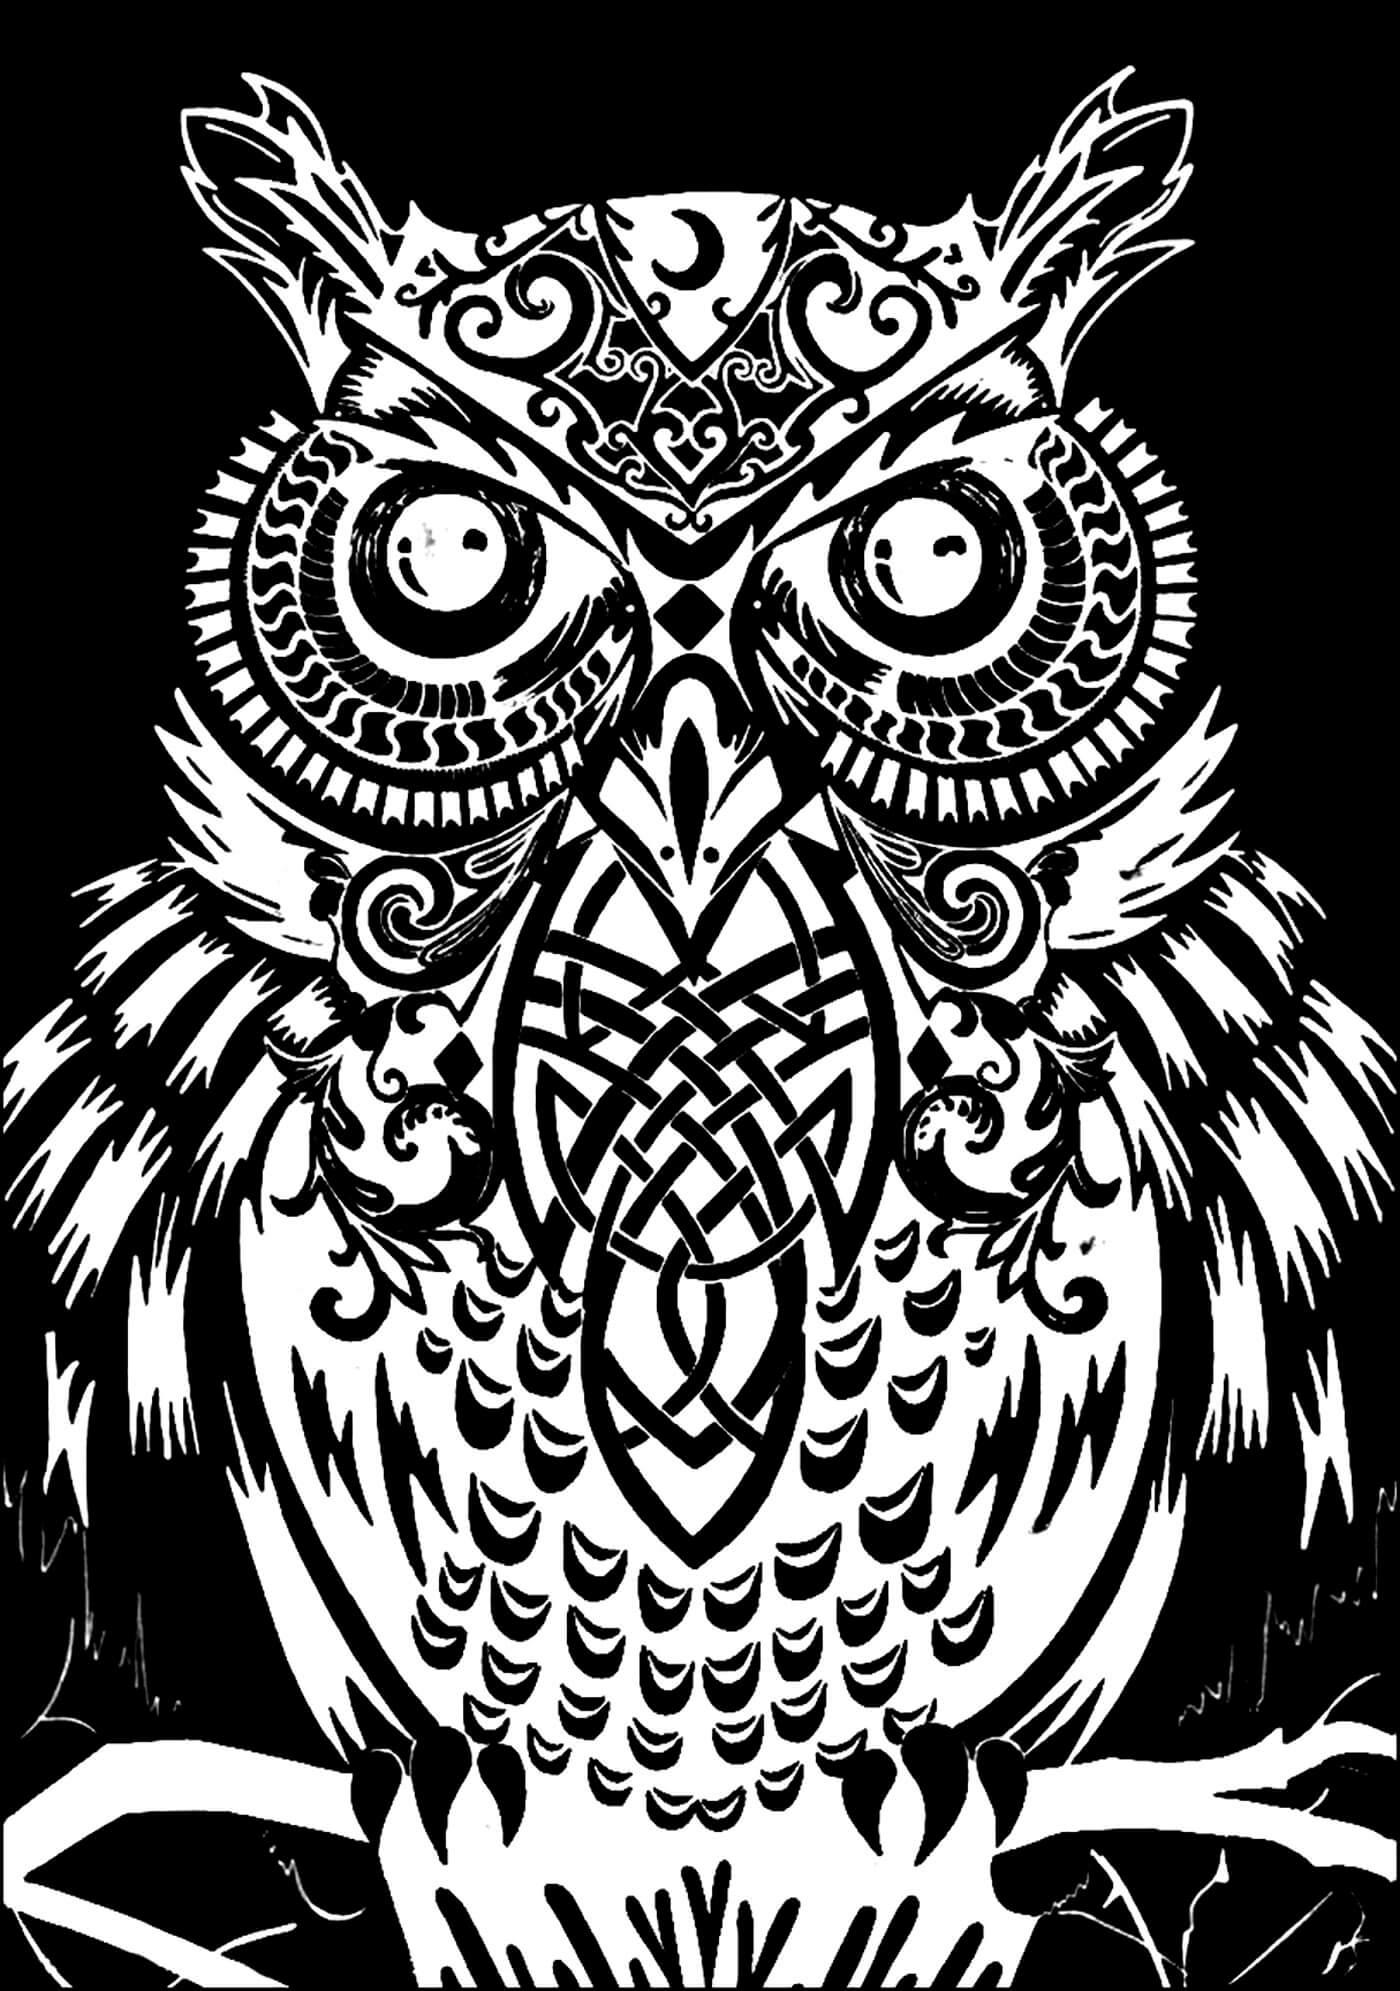 coloring kite images black and white coloring pages for adults difficult animals 47 coloring black images kite coloring and white